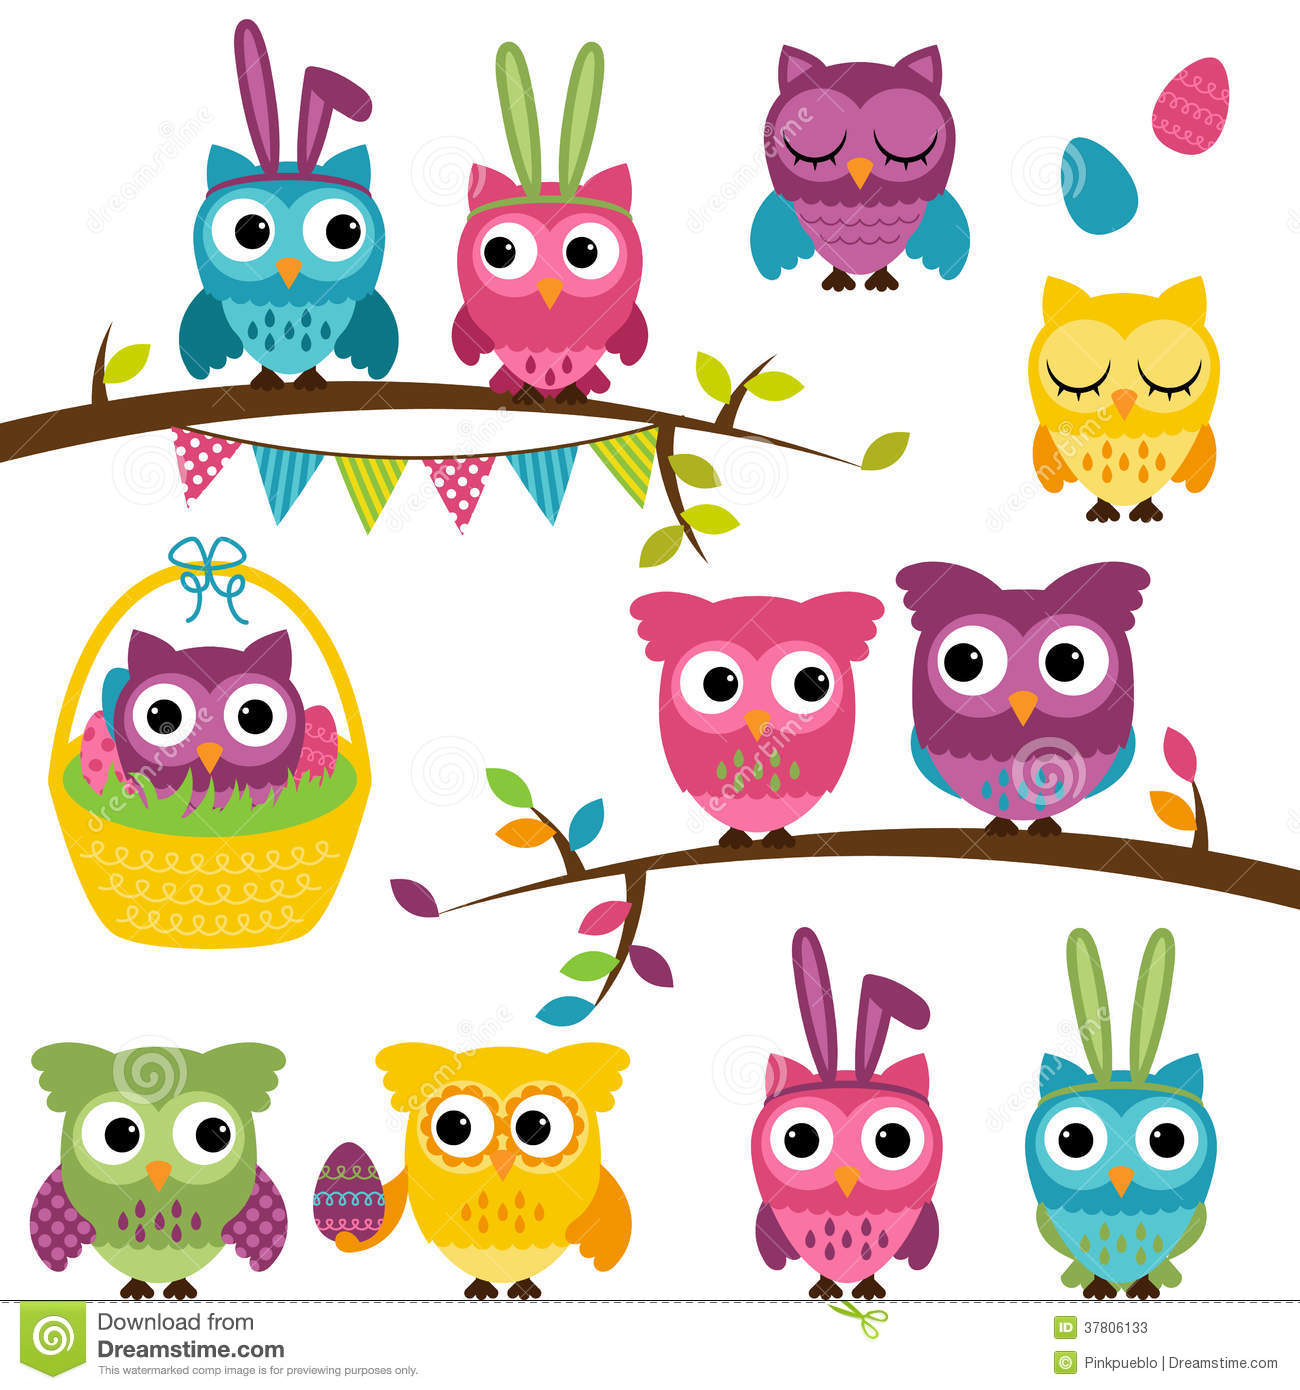 vector-collection-easter-spring-themed-owls-37806133.jpg